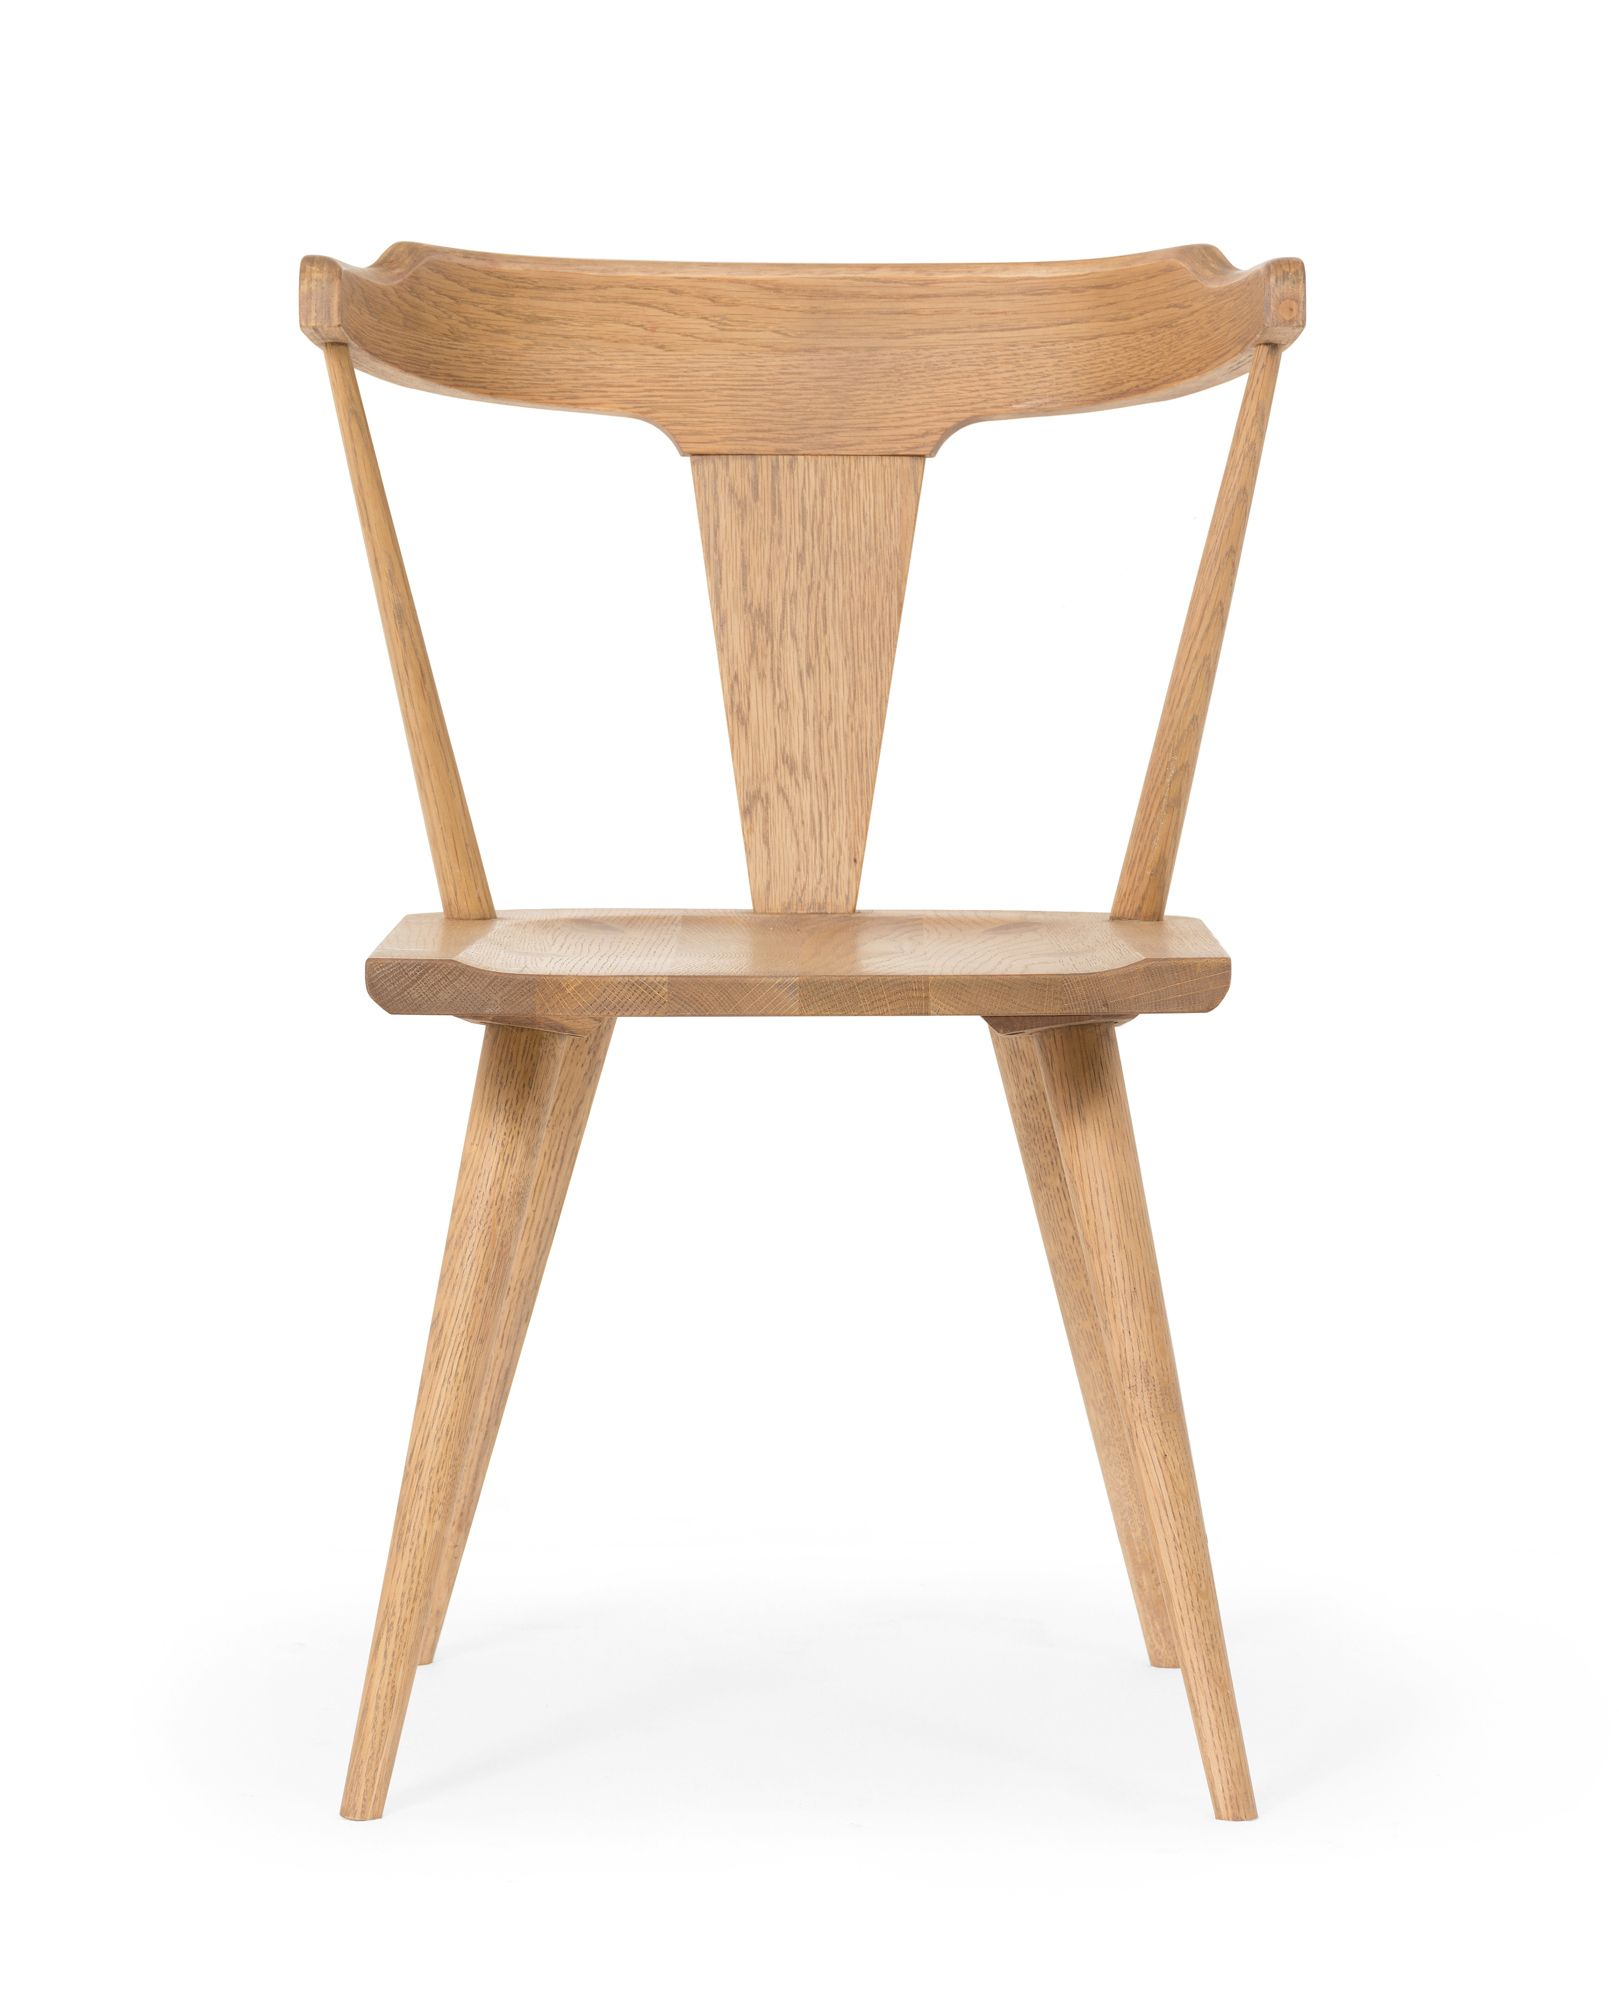 Lawnie Dining Chair Sandy Oak Dining Chairs Chair Old Chairs